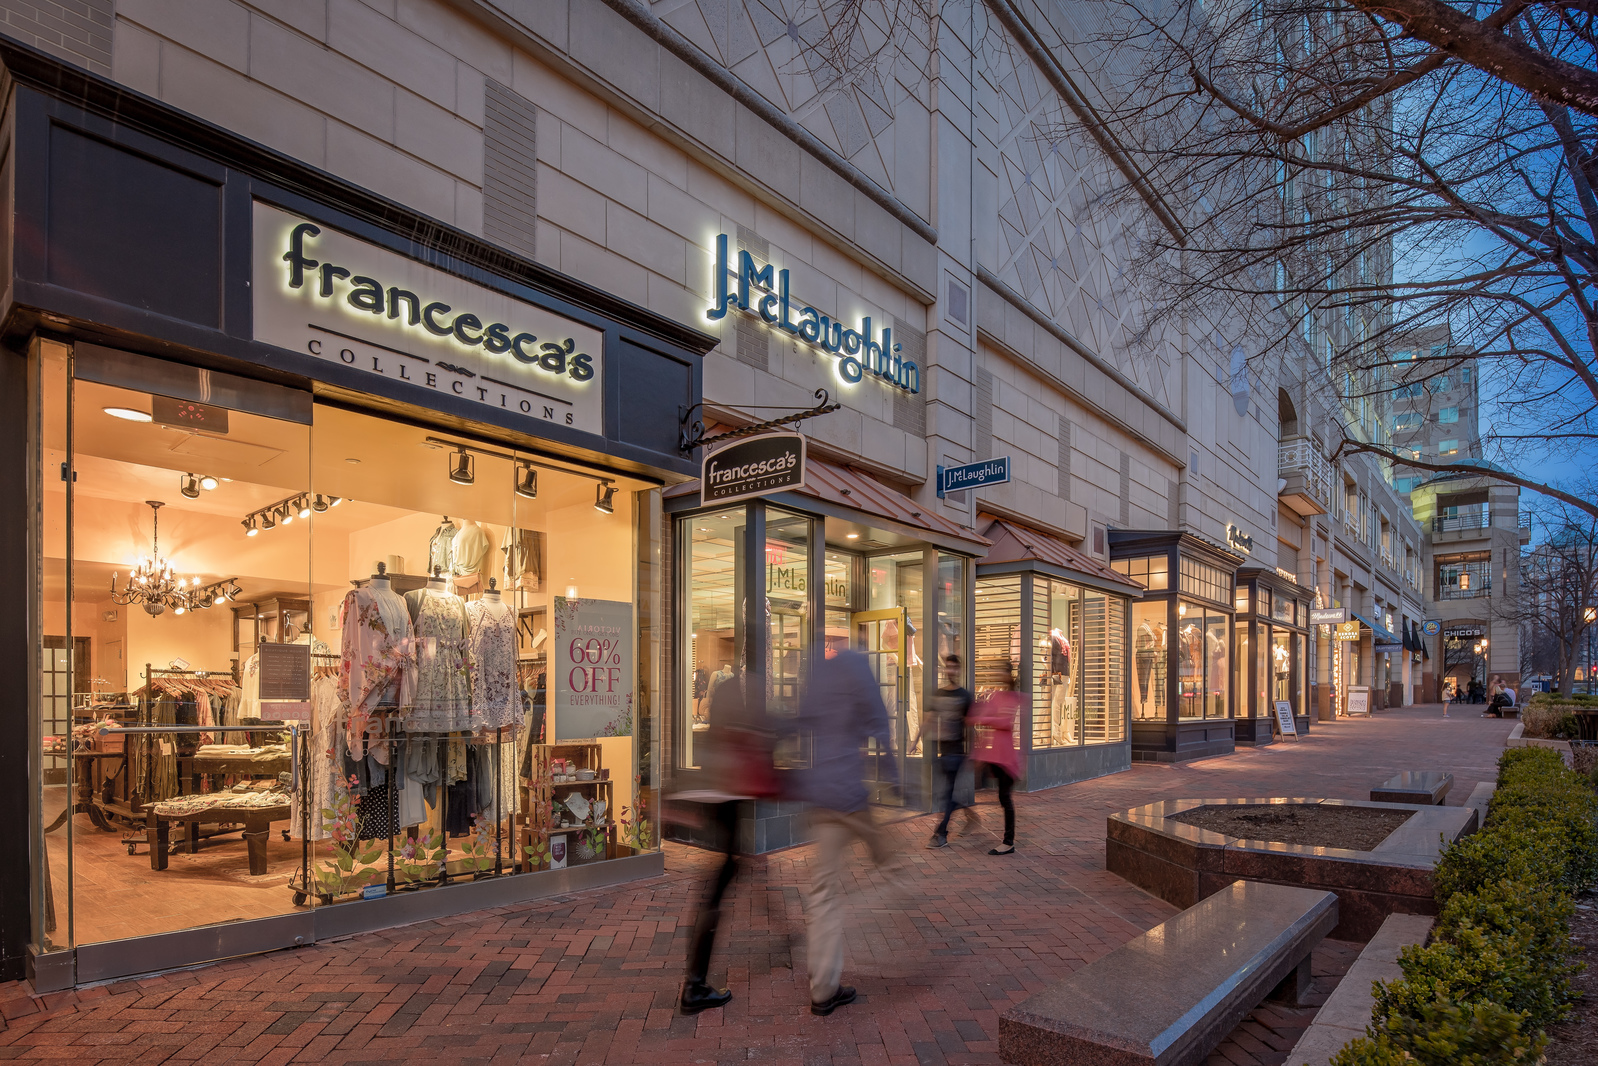 There are nearly a hundred boutique shopping options in the Herndon/Reston neighborhood near Waterview.